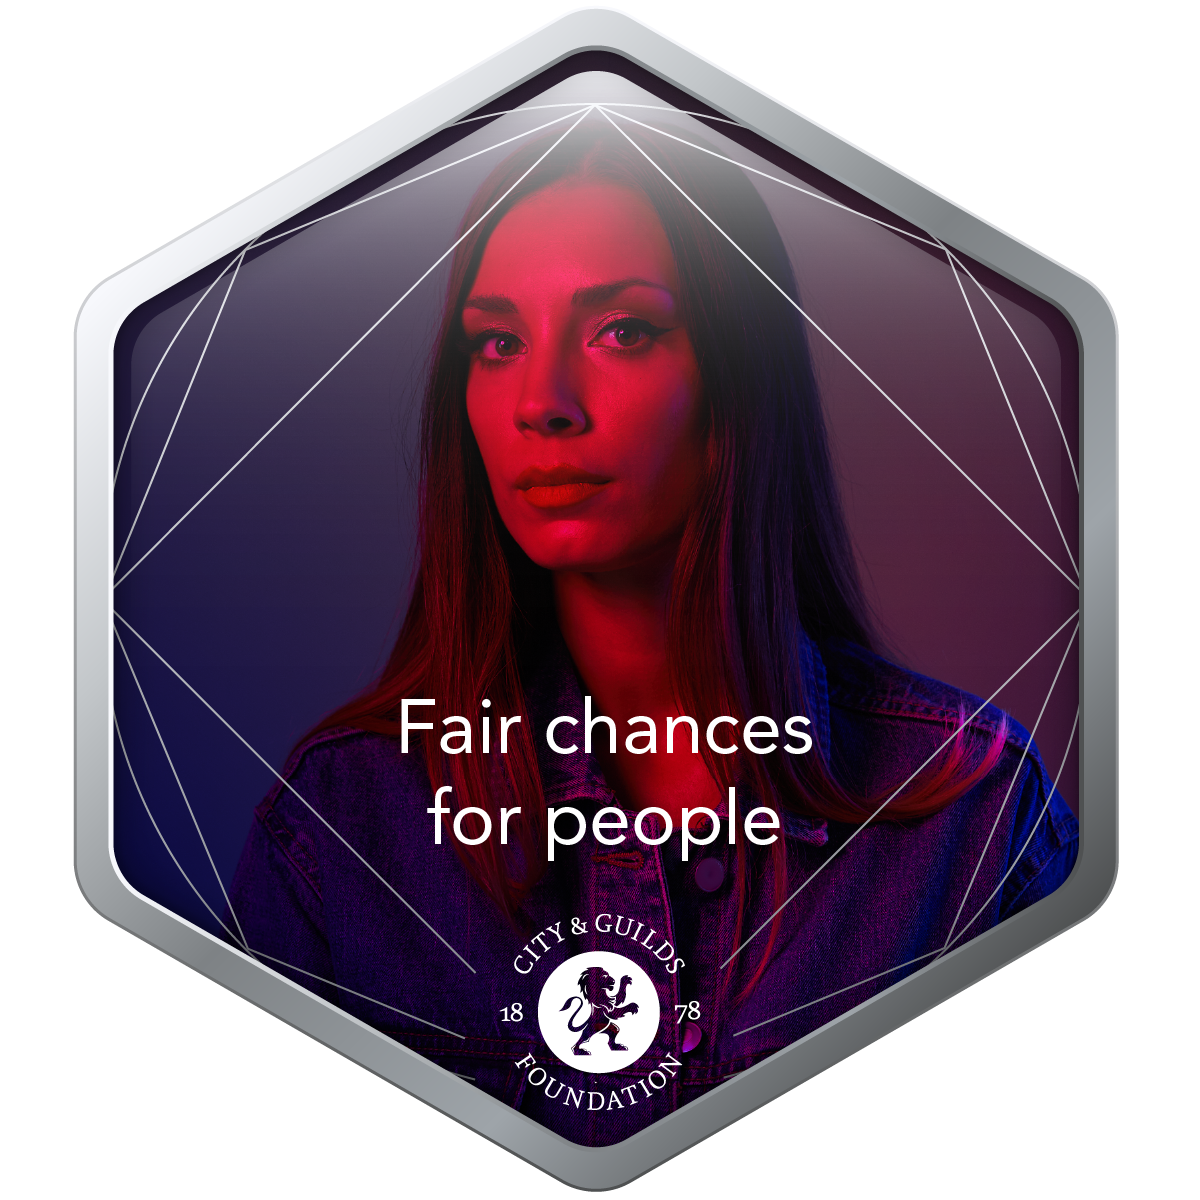 Fair chances for people